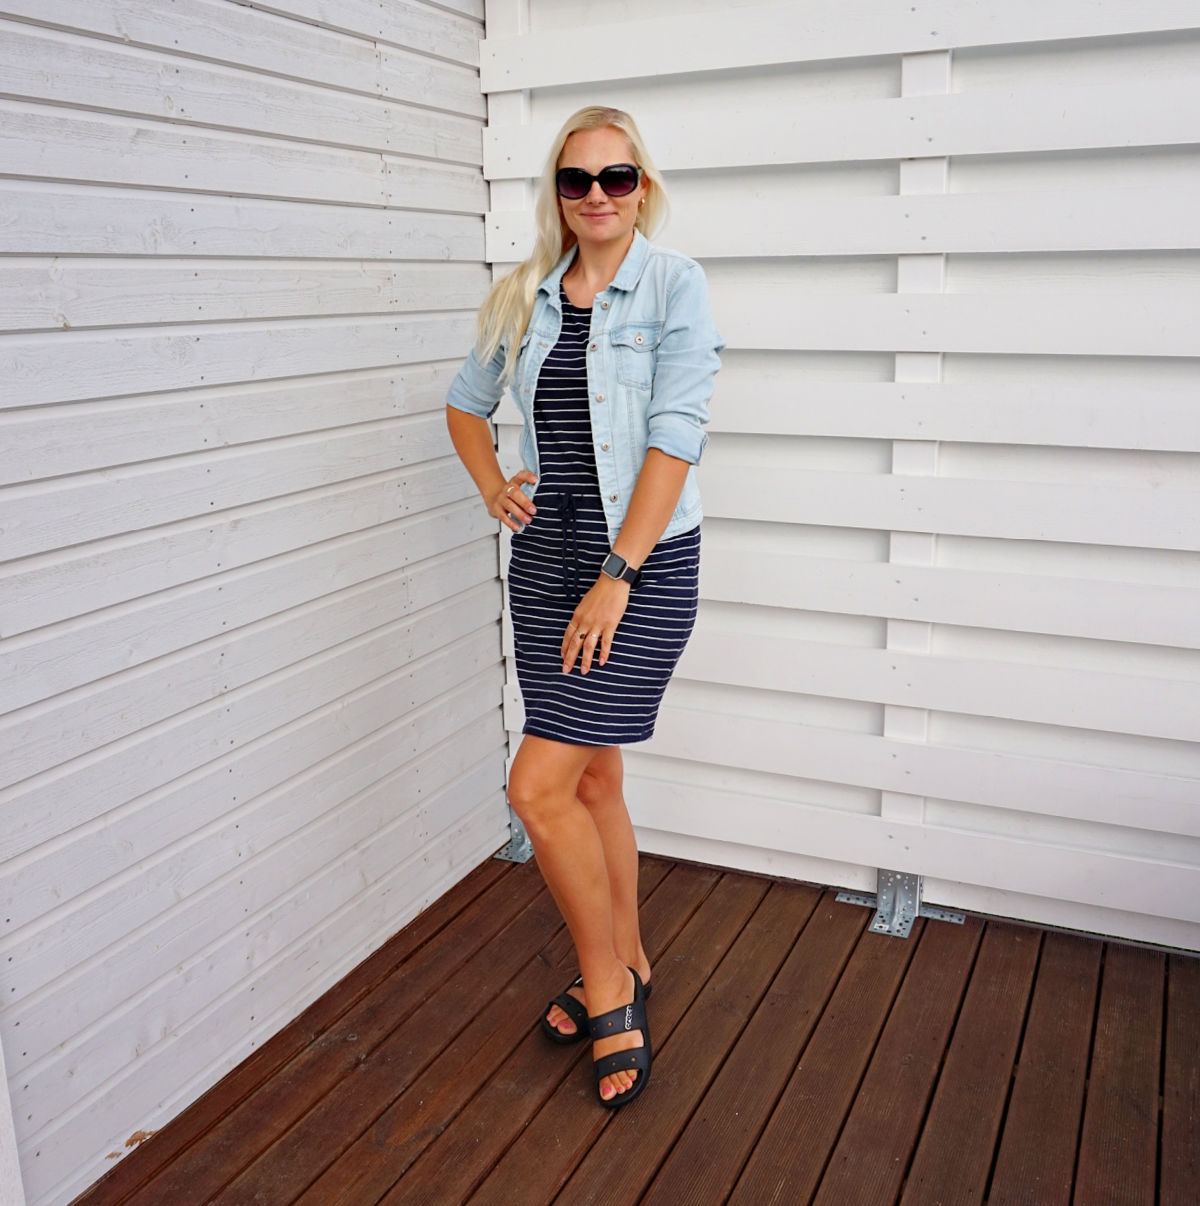 Striped dress and denim jacket outfit